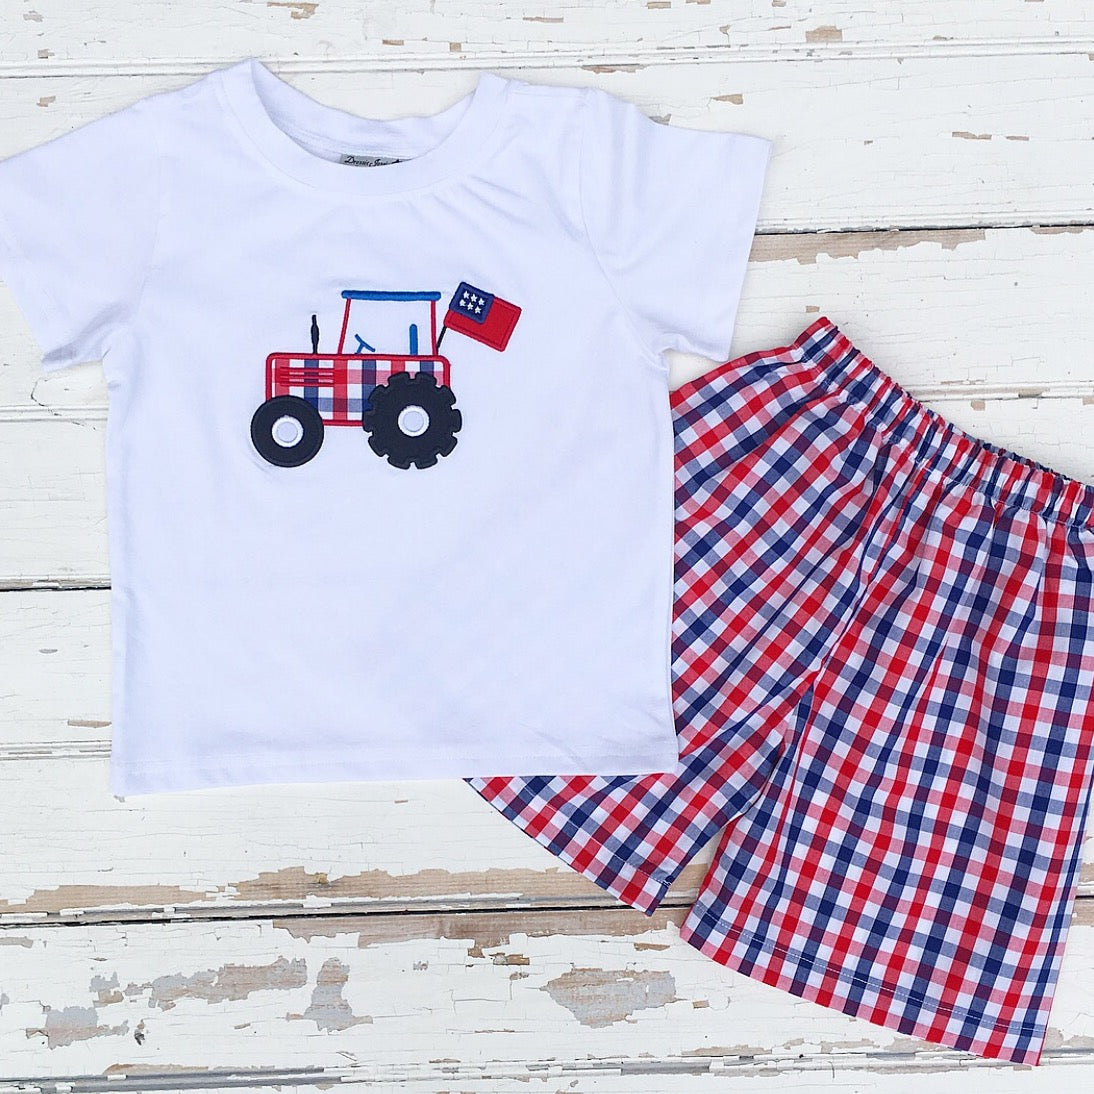 Boys Summer Play Wear Outfit Red White Blue Gingham Check Shorts and Tractor Applique Shirt